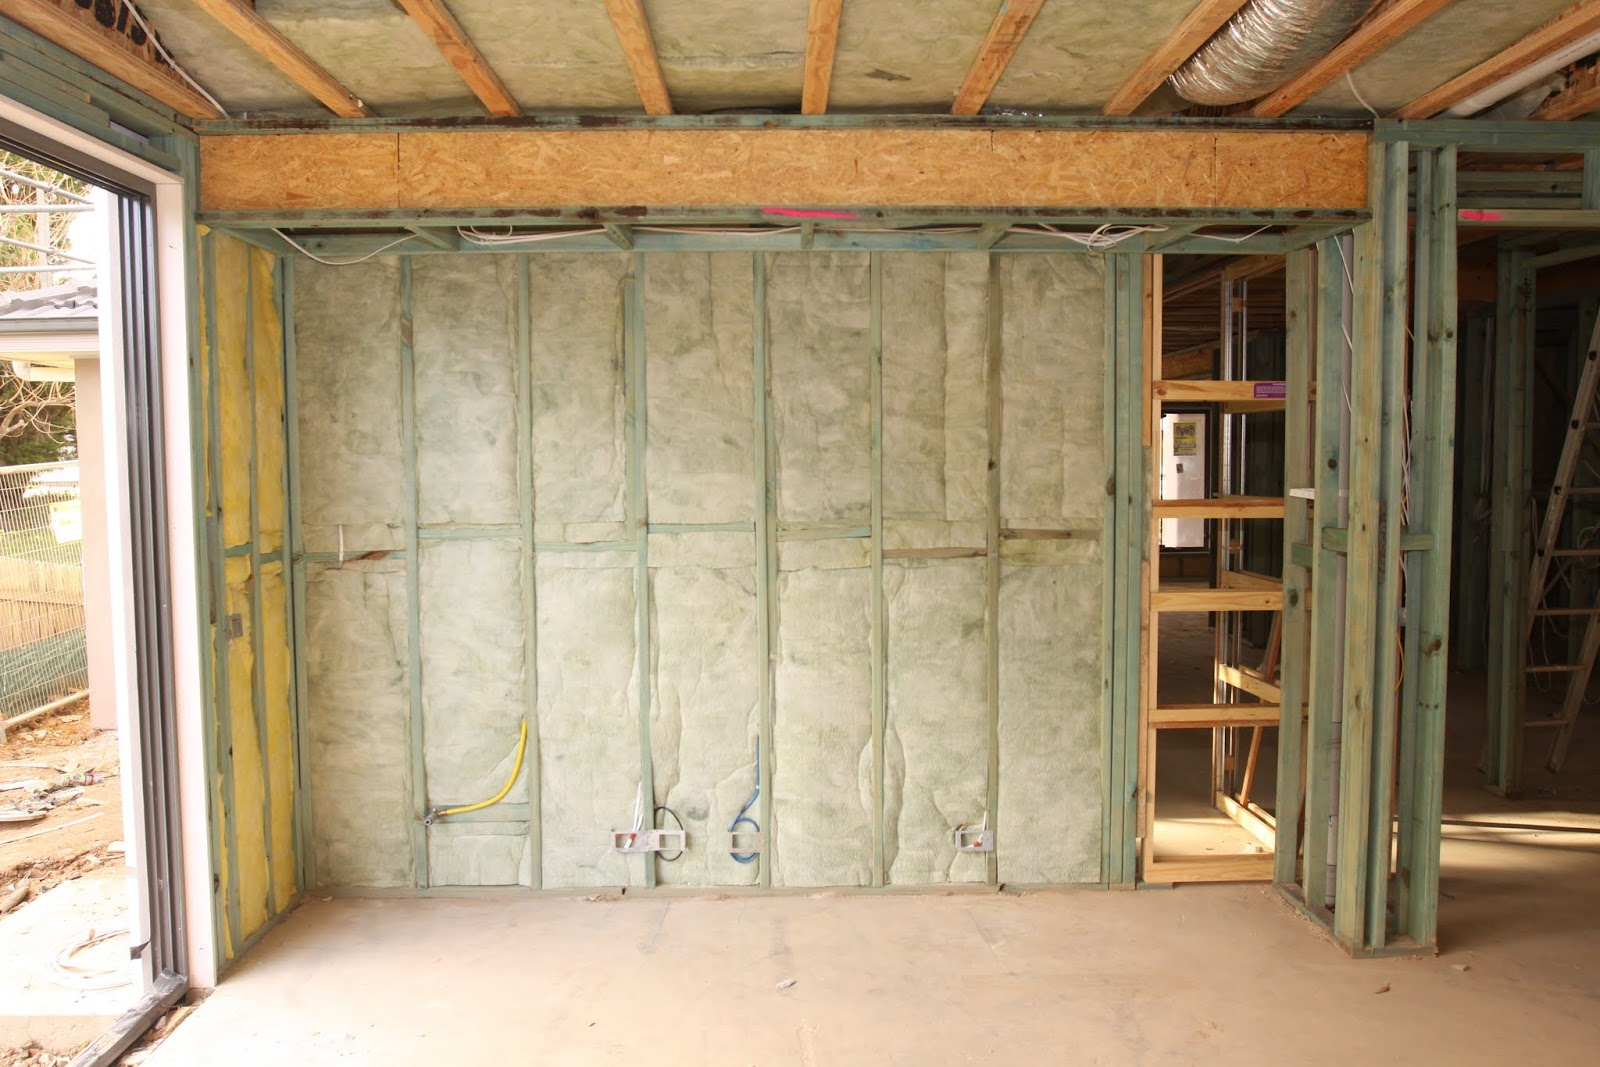 In The Family Room The Other Side Of The Wall Is The Study But I Just Realised The Cavity Slide Door Frame Will Leave An Acoustic Insulation Gap! & Insulate Door Frame u0026 Foam Insulation Sprayed Into The Space ... pezcame.com